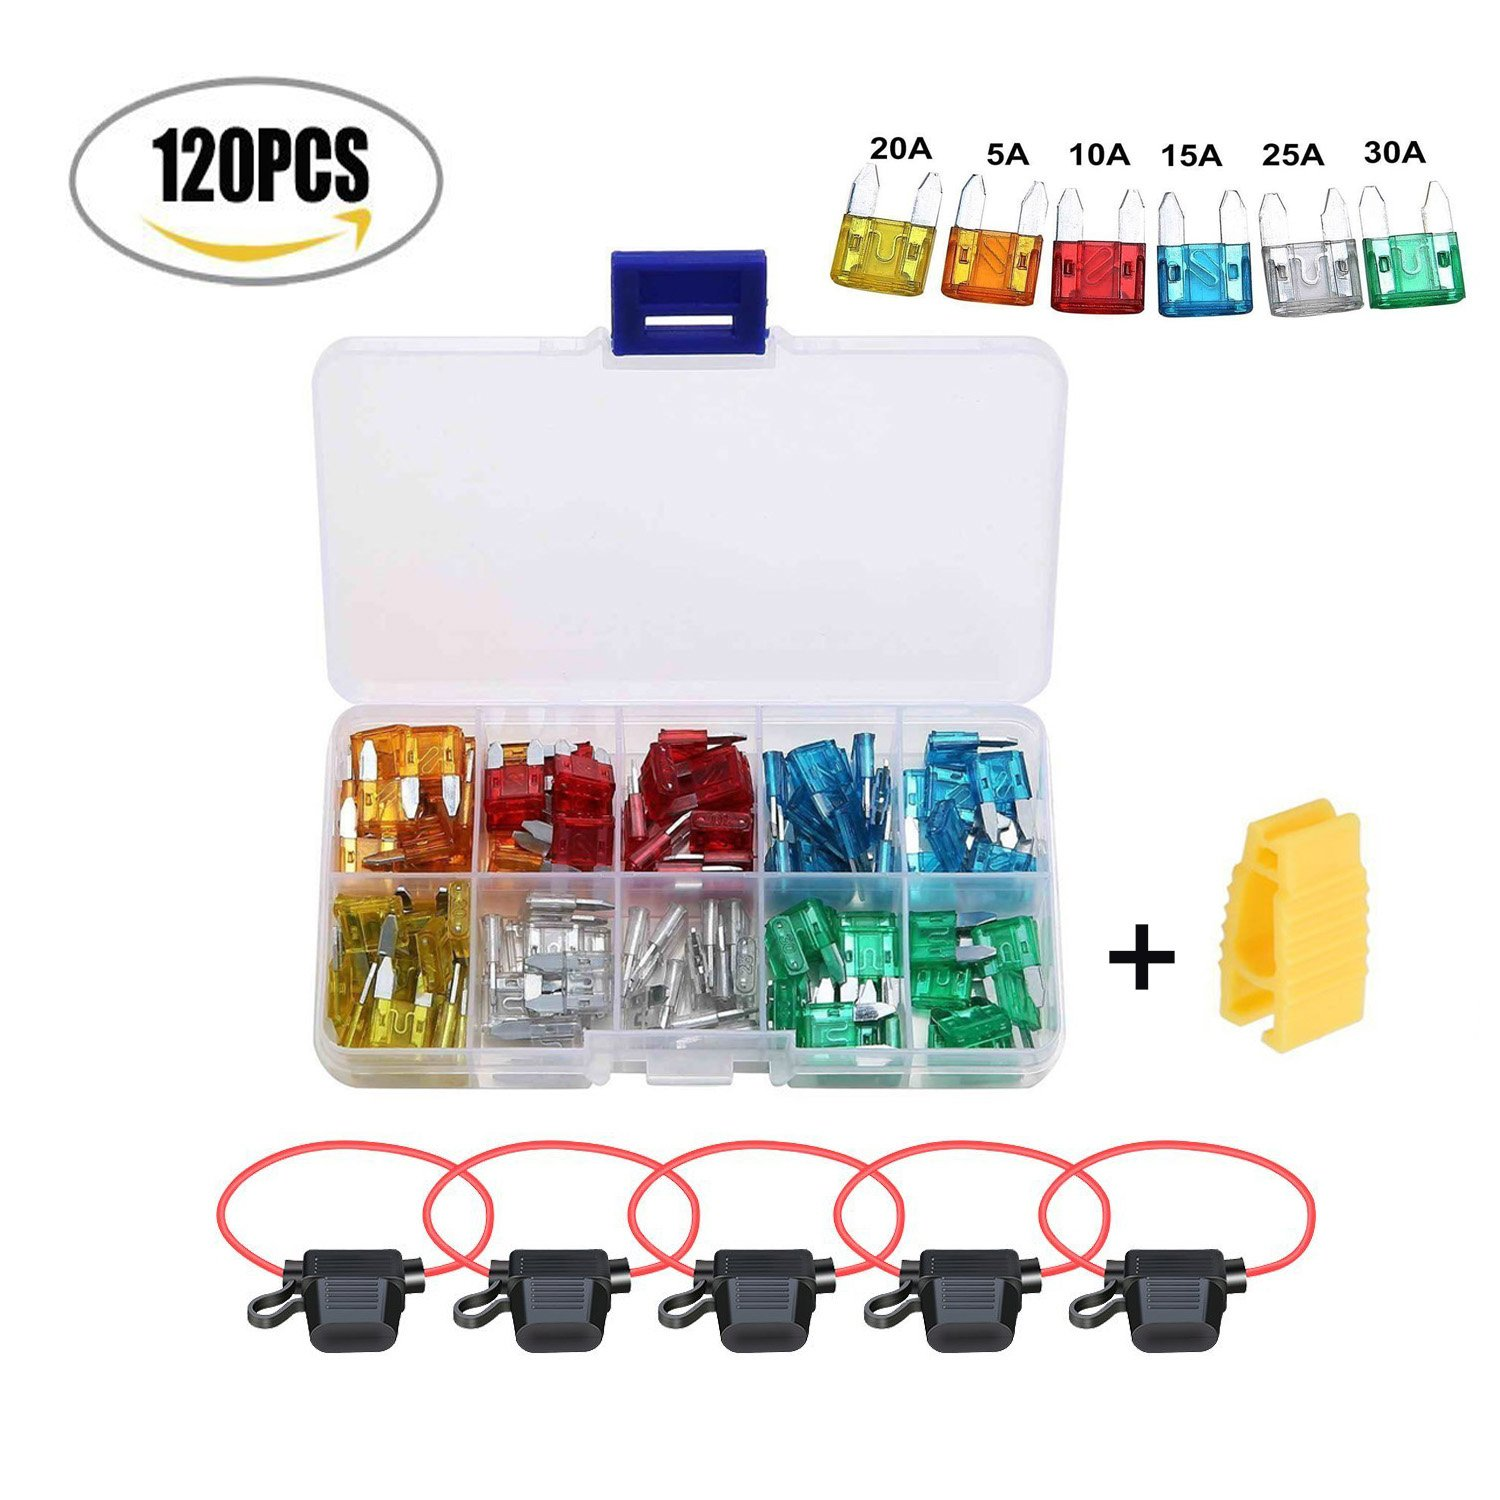 120 Pieces Mini Blade Fuse Assorted Circuit Blade +5 Inline Fuse Holder for Automotive Car Truck SUV RV Boat with 1 Puller Extraction Tool(5A, 10A, 15A, 20A, 25A, 30A) Twshiny